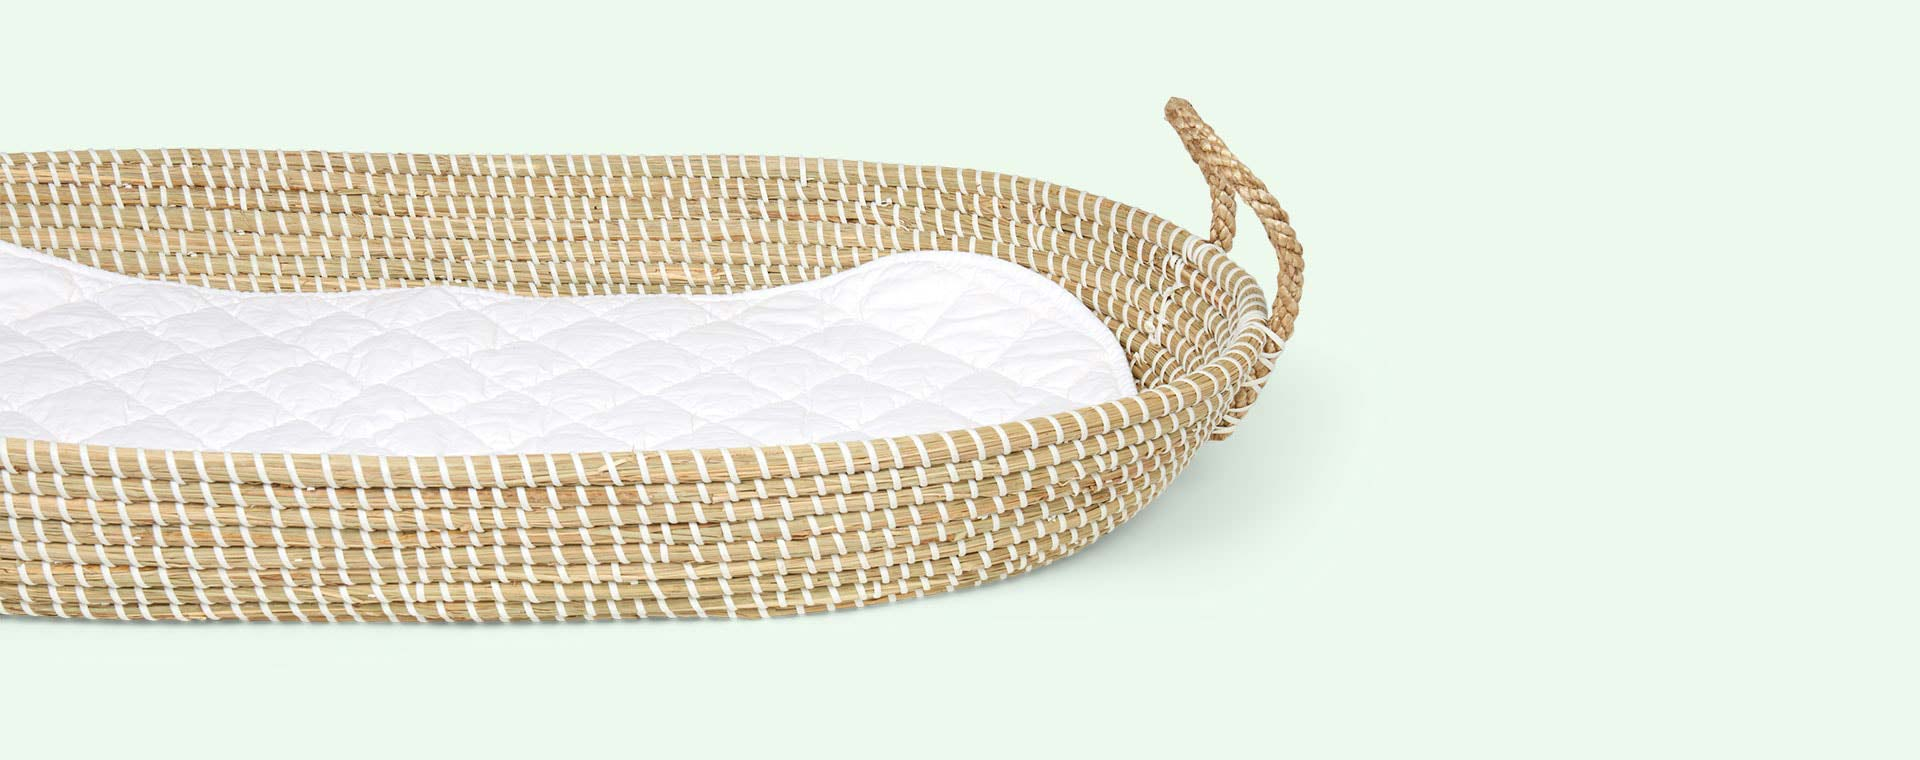 White Olli Ella Changing Basket Cotton Insert